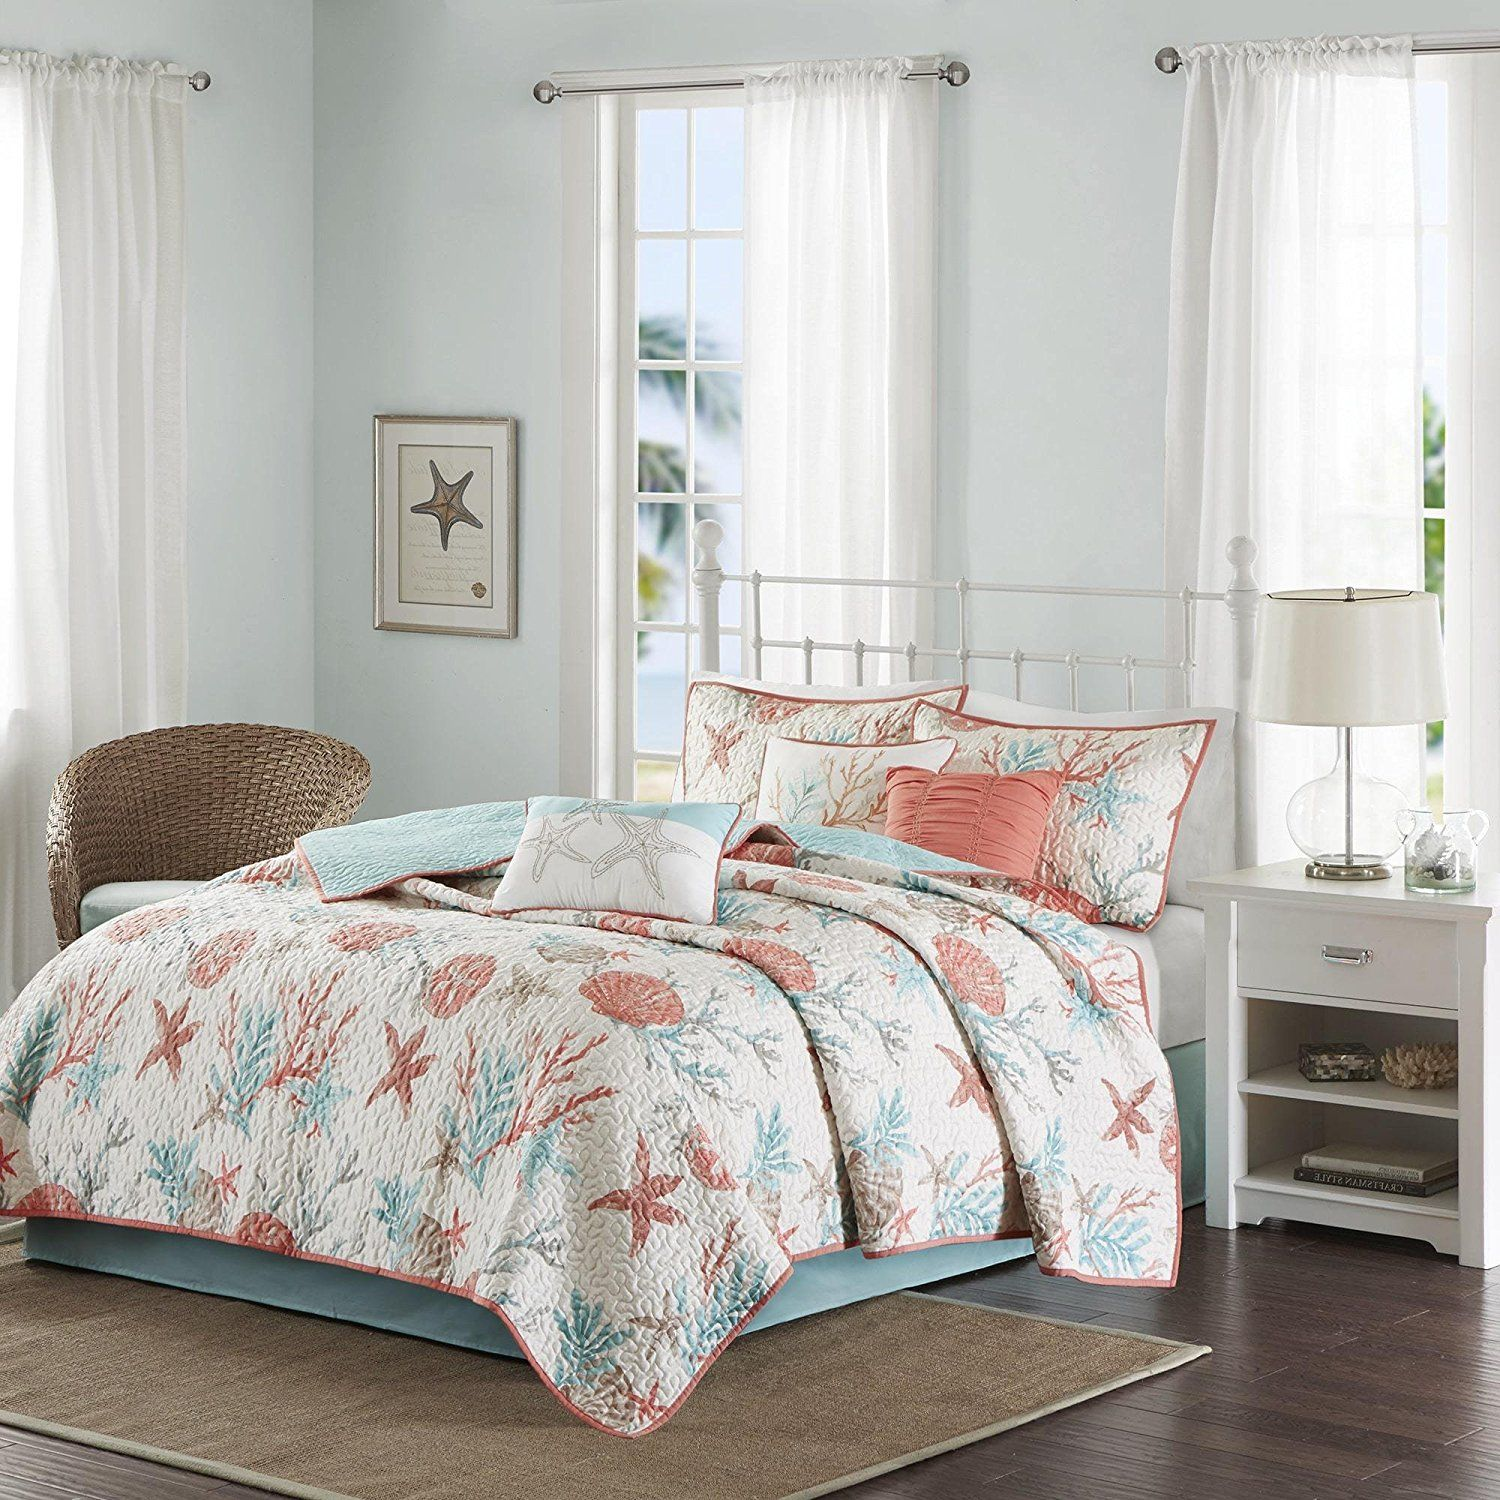 6 Piece Pink Coastal Full Queen Size Coverlet